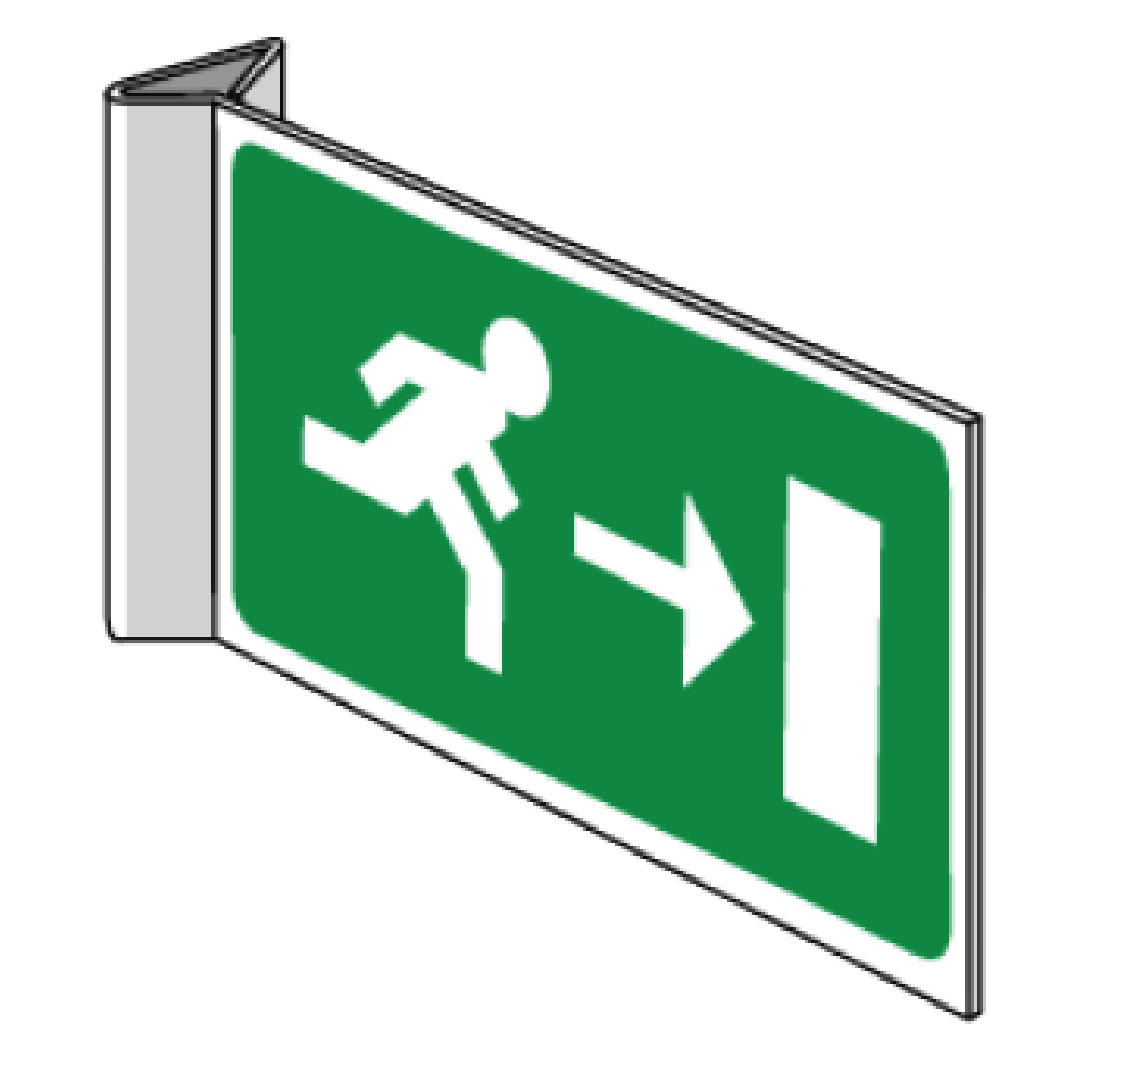 flag evacuation pictogram